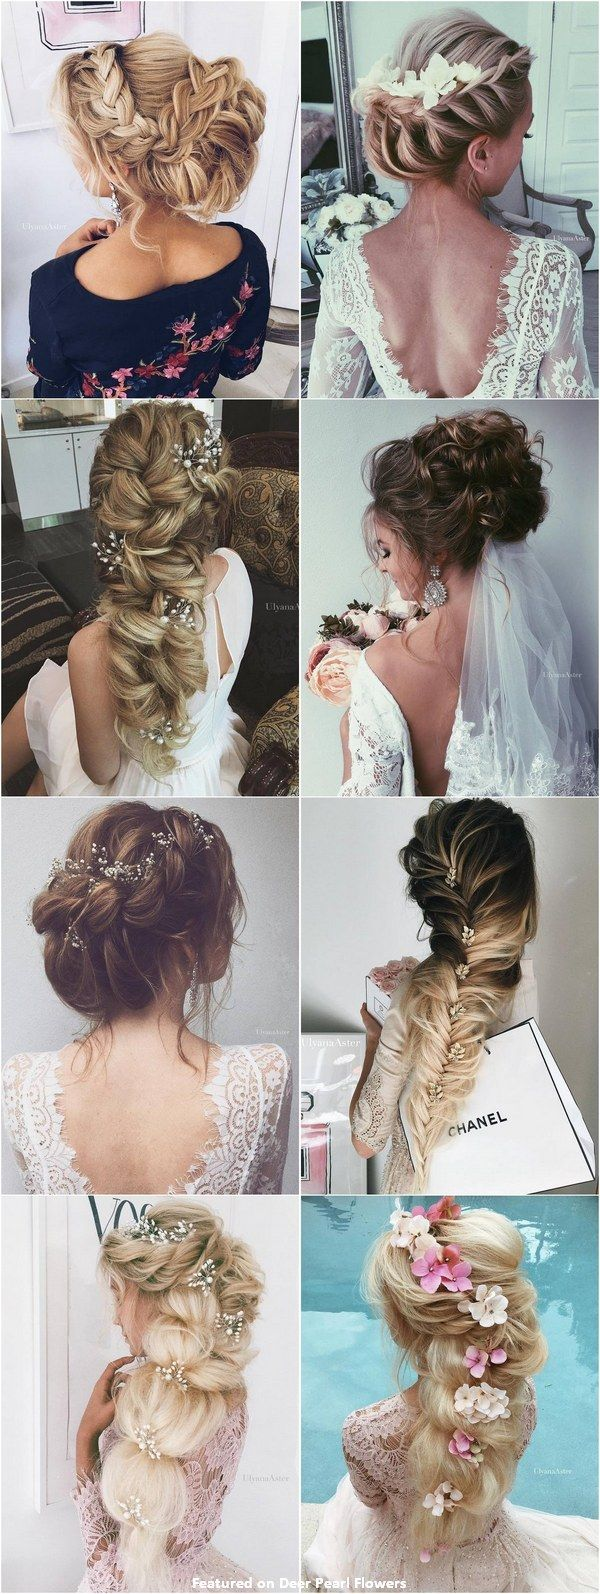 65 New Romantic Long Bridal Wedding Hairstyles to Try / Ulyana Aster www.ulyanaa...